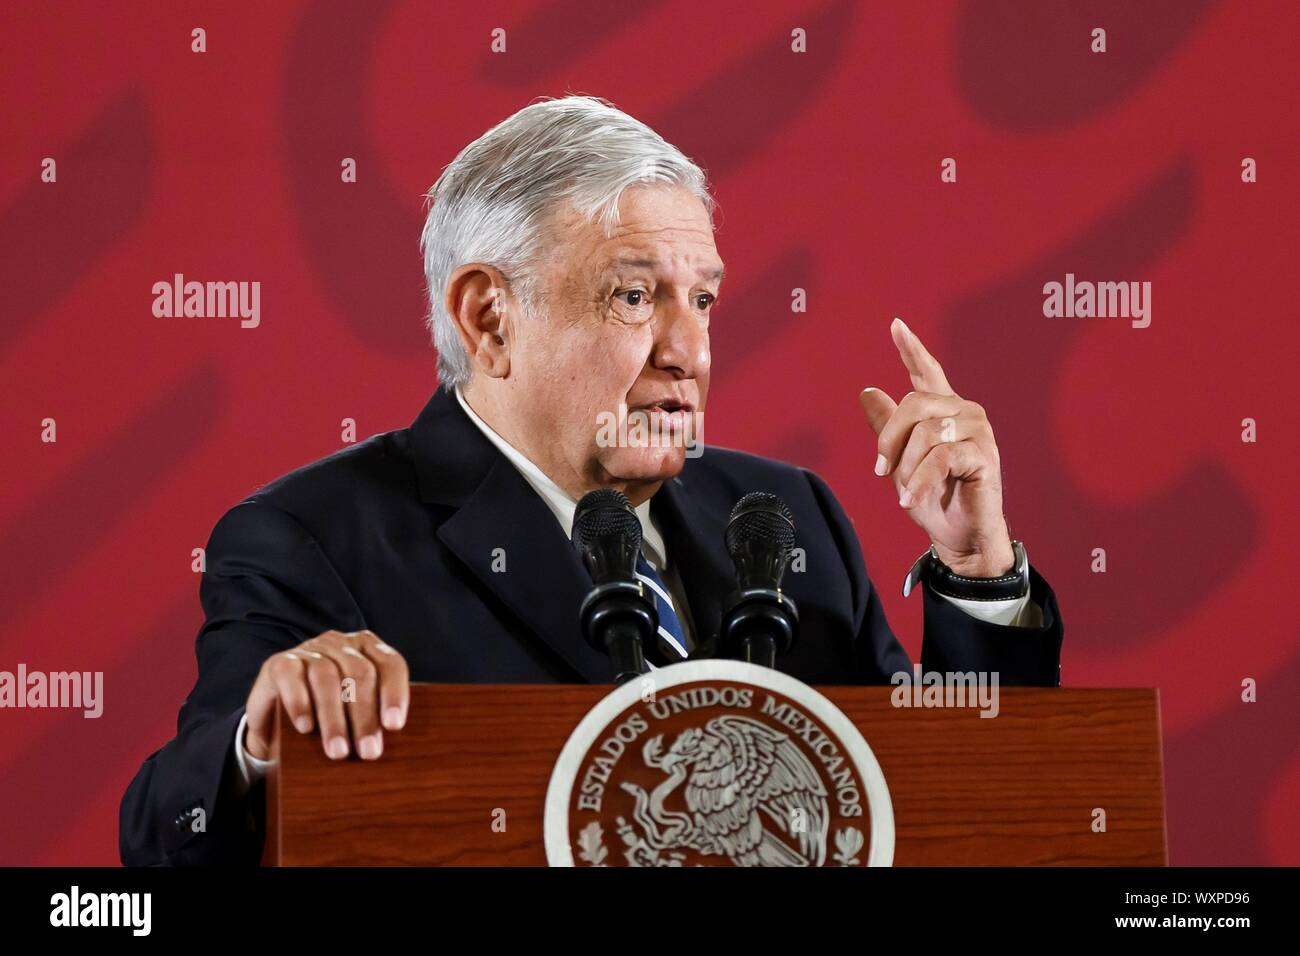 Mexico City, Mexico. 17th Sep, 2019. Mexican President Andres Manuel Lopez Obrador speaks during his morning press conference at the National Palace, in Mexico City, Mexico, 17 September 2019. López Obrador said that the supply and prices of crude oil are 'protected' in the Latin American nation after attacks on Saudi Arabia refineries with drones, which have put the market on hold. Credit: Jose Mendez/EFE/Alamy Live News Stock Photo